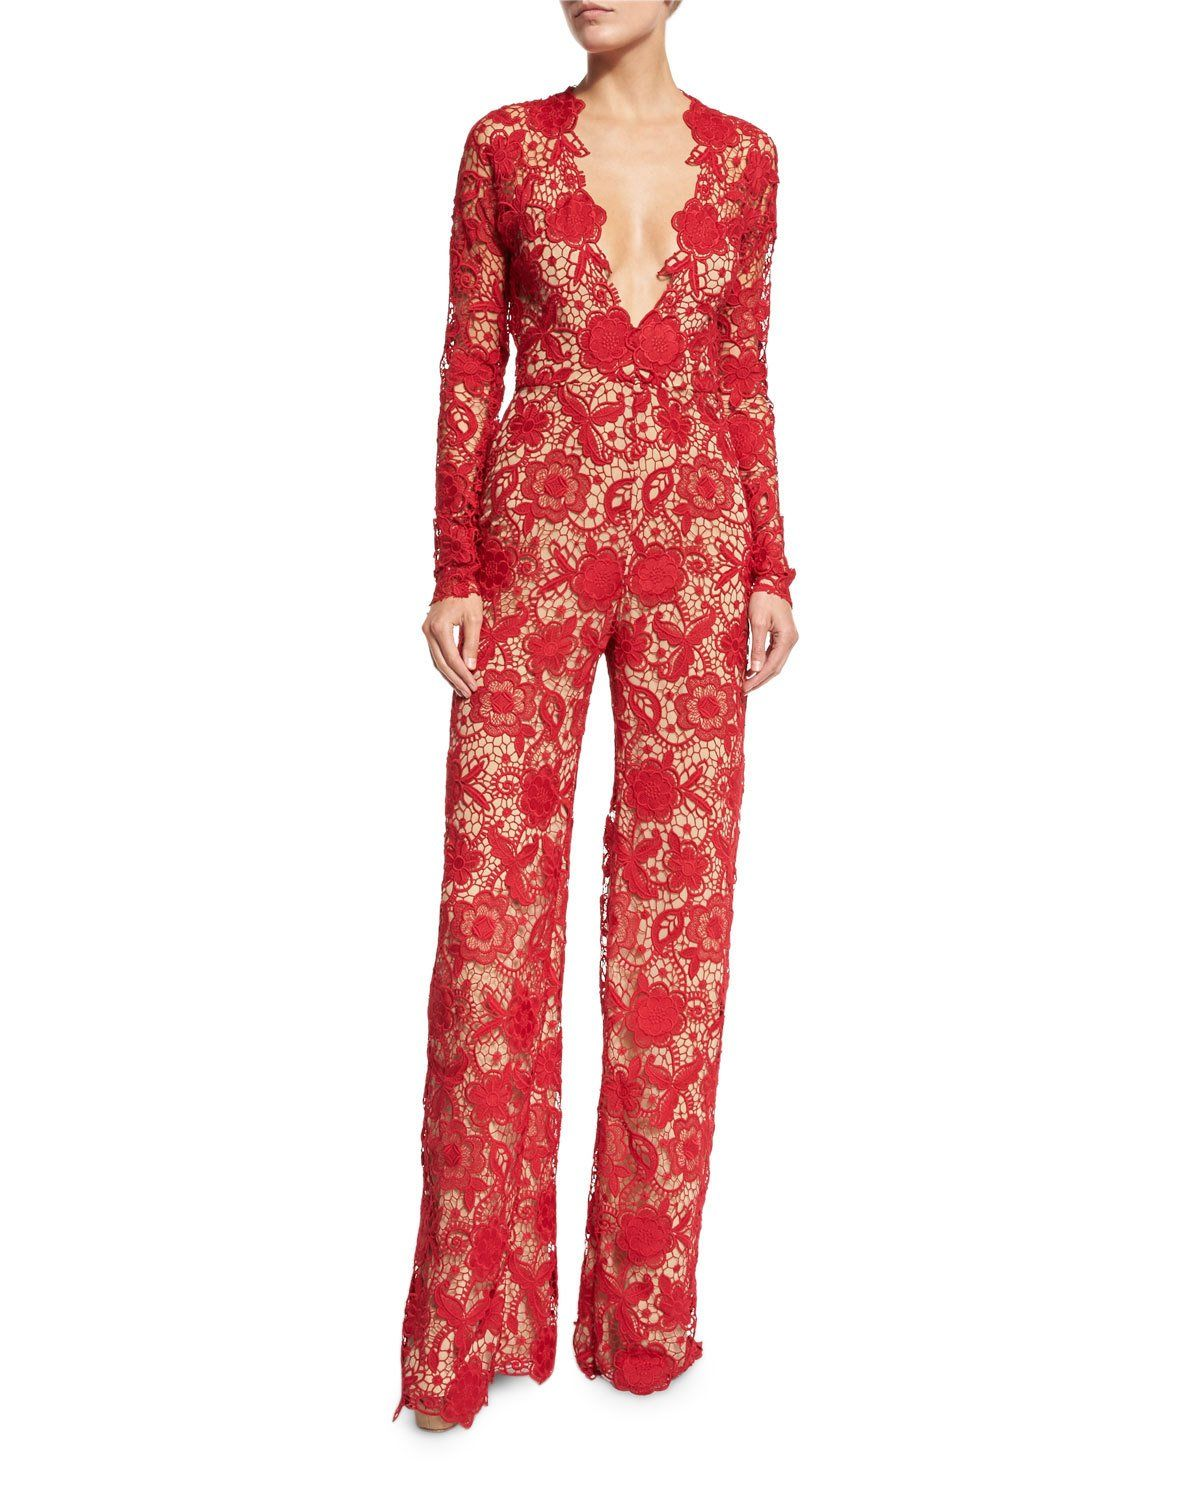 a335e6ffb078 NAEEM KHAN LONG-SLEEVE PLUNGING LACE JUMPSUIT, RED. #naeemkhan #cloth #